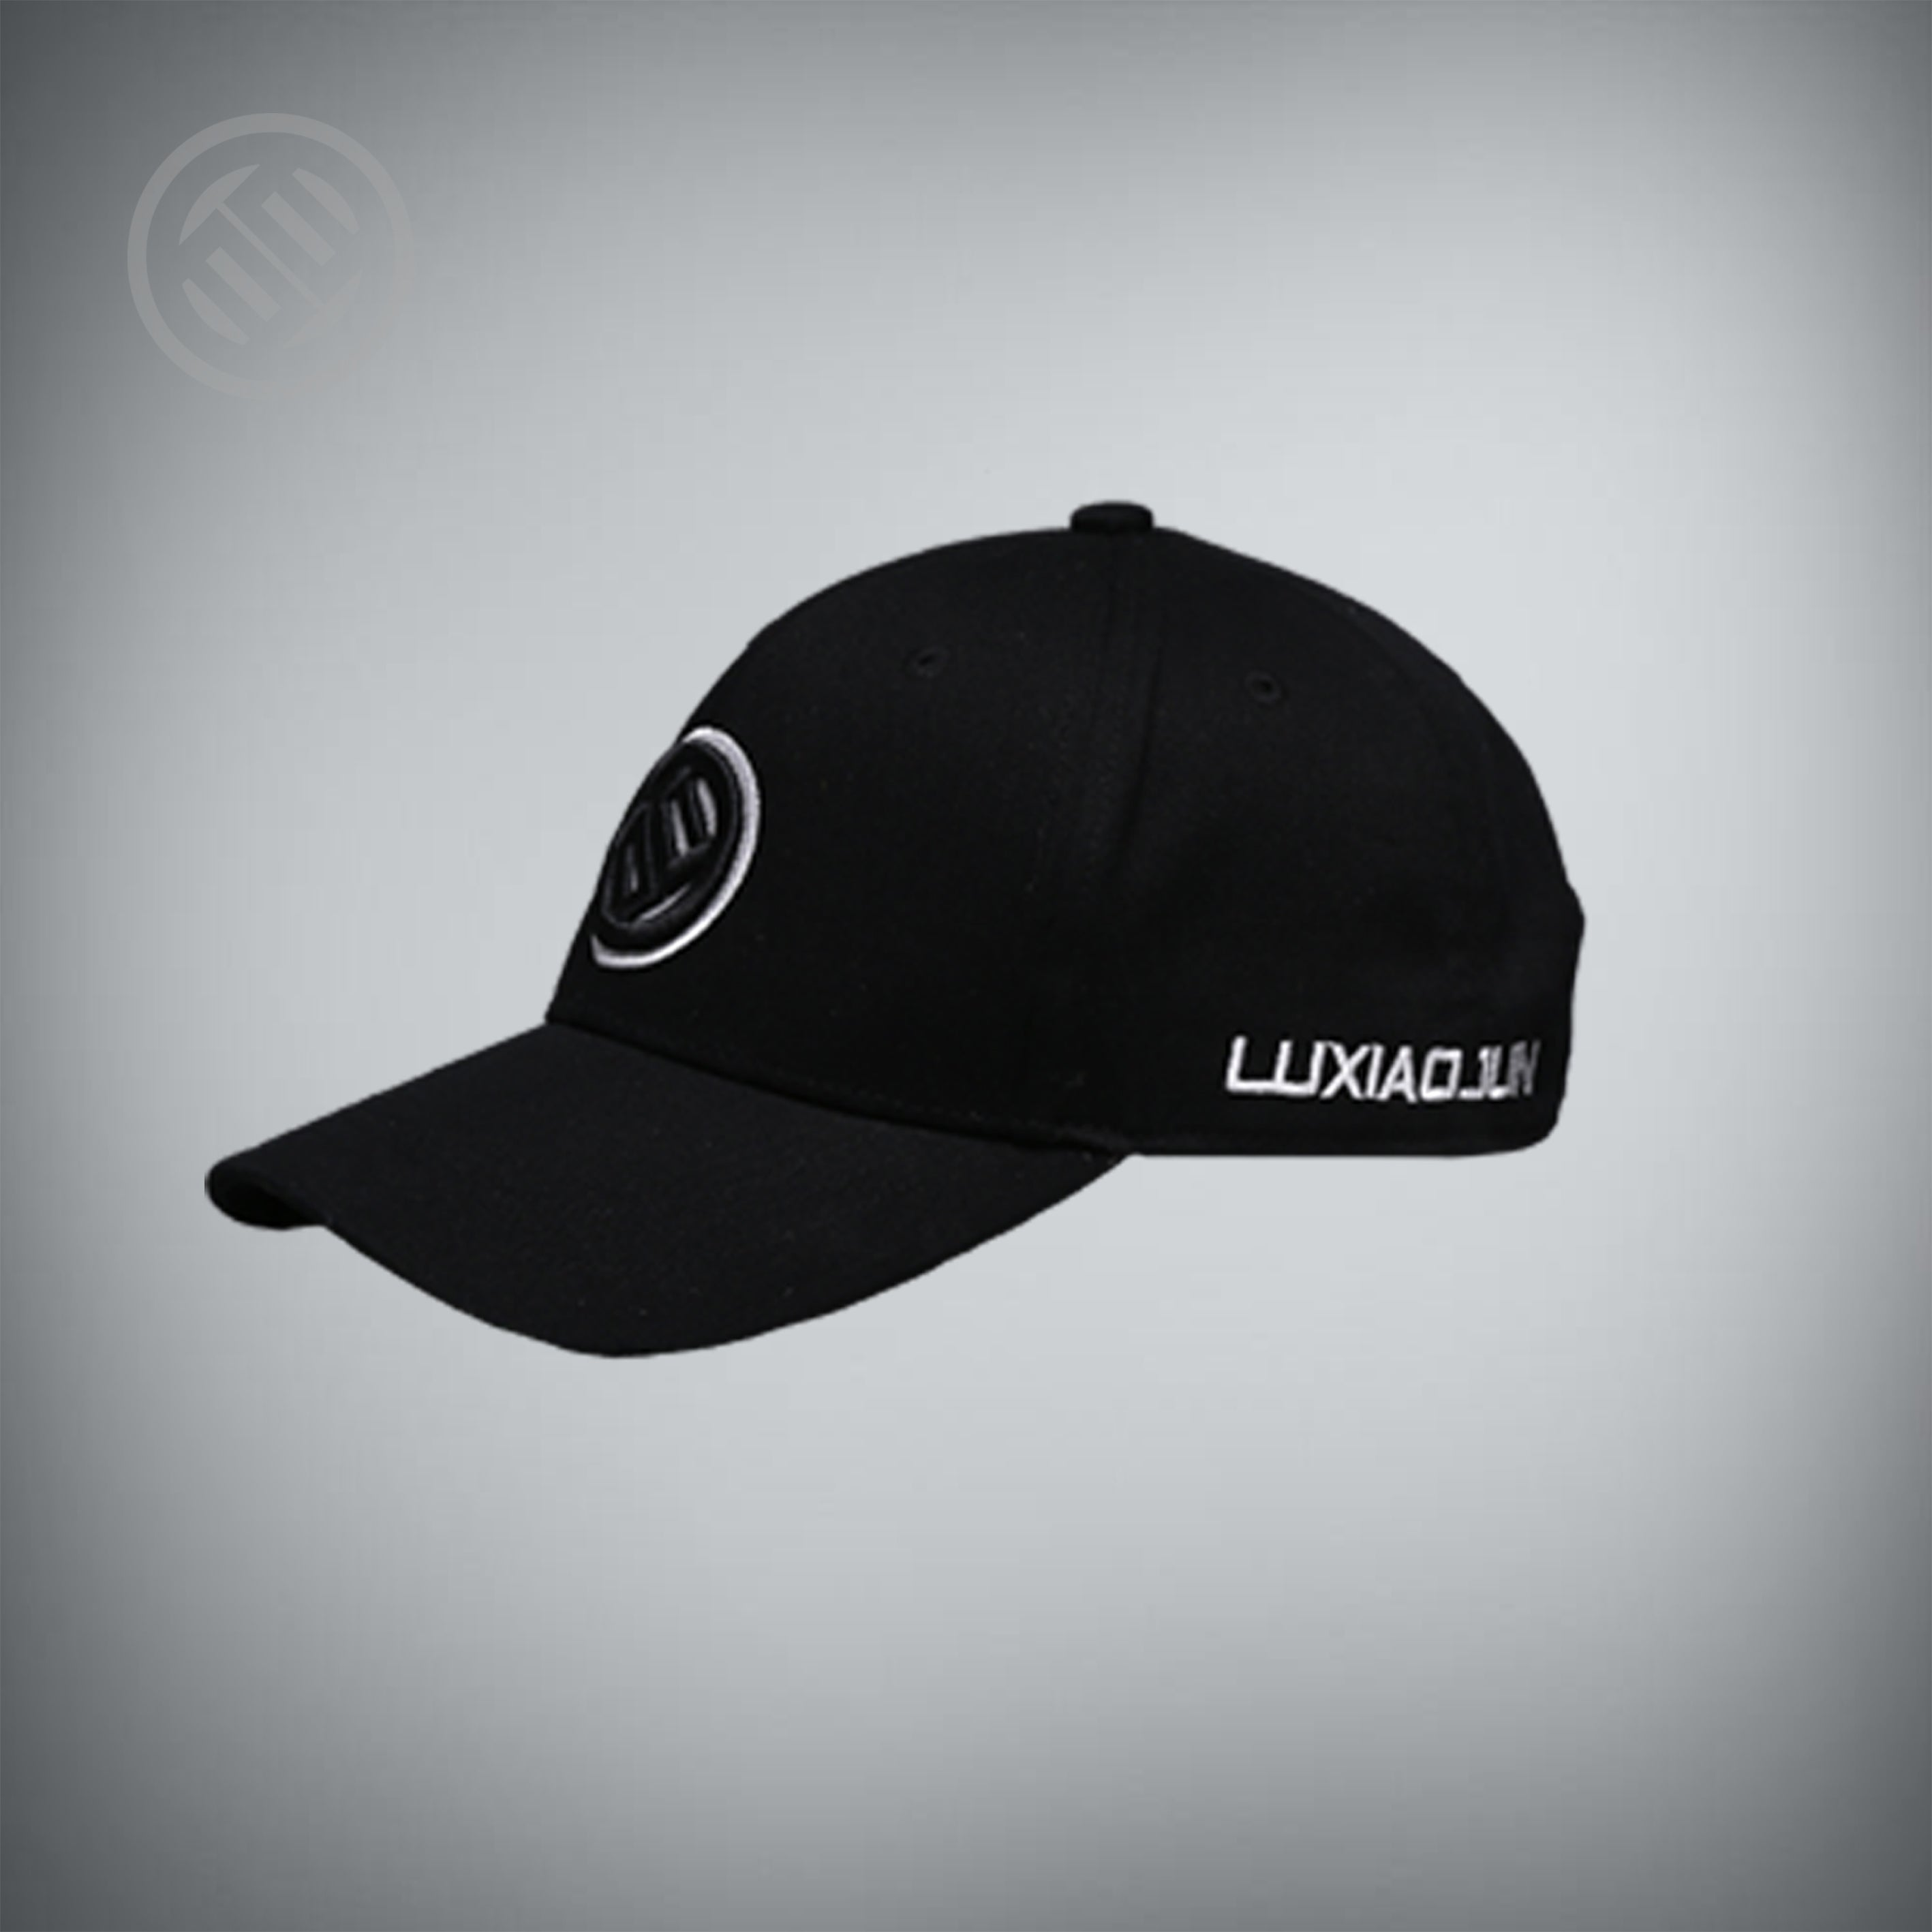 LUXIAOJUN Training Hat - LUXIAOJUN Weightlifting